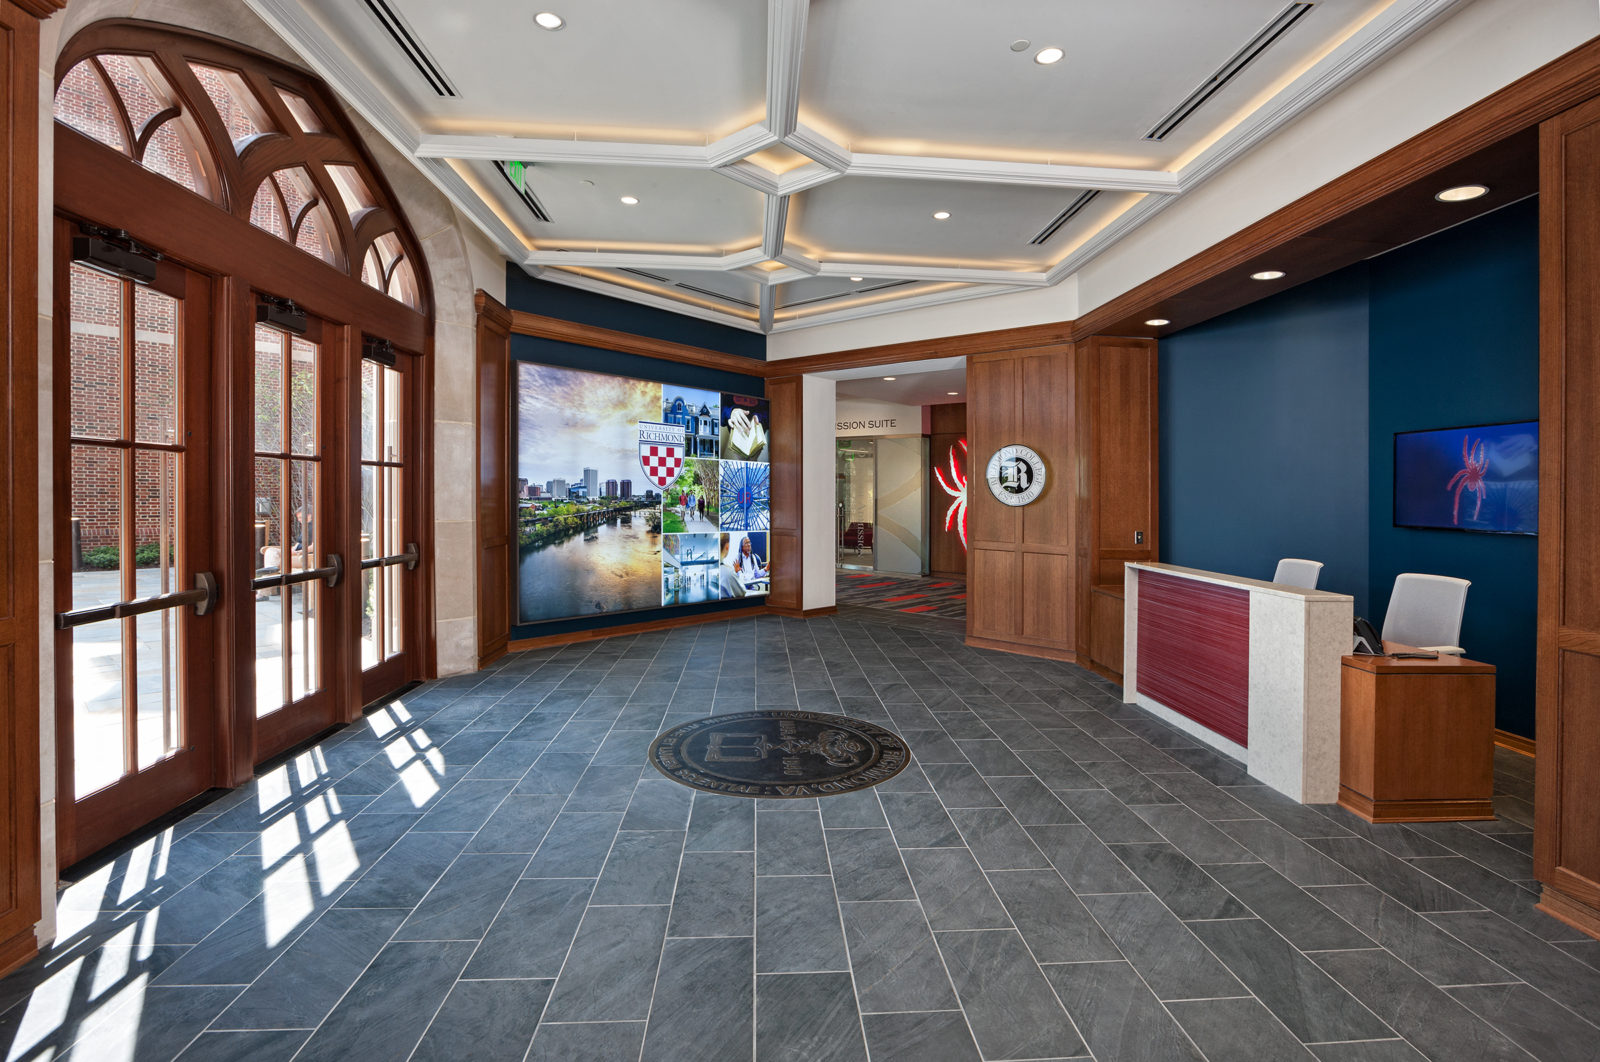 NEWS - UR Queally Center Interior